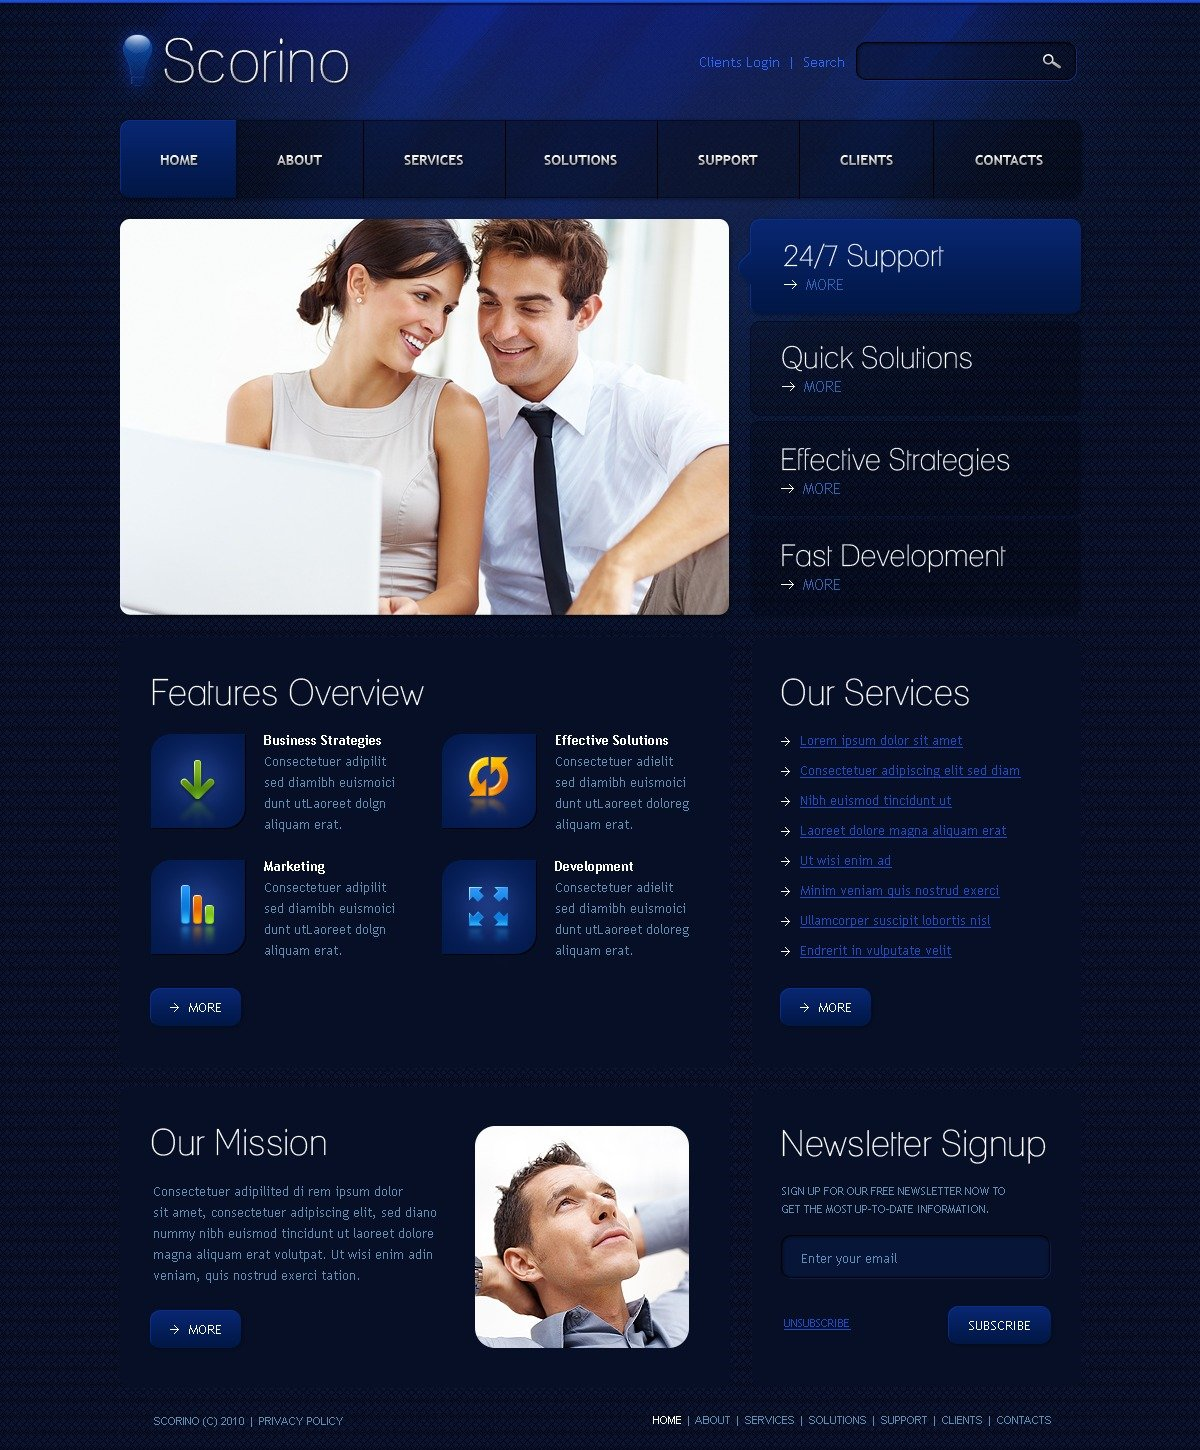 The Scorino Business Company PSD Design 54325, one of the best PSD templates of its kind (business, wide, jquery), also known as scorino business company PSD template, corporate solutions PSD template, innovations PSD template, contacts PSD template, service PSD template, support PSD template, information dealer PSD template, stocks PSD template, team PSD template, success PSD template, money PSD template, marketing PSD template, director PSD template, manager PSD template, analytics PSD template, planning PSD template, limited PSD template, office PSD template, sales and related with scorino business company, corporate solutions, innovations, contacts, service, support, information dealer, stocks, team, success, money, marketing, director, manager, analytics, planning, limited, office, sales, etc.